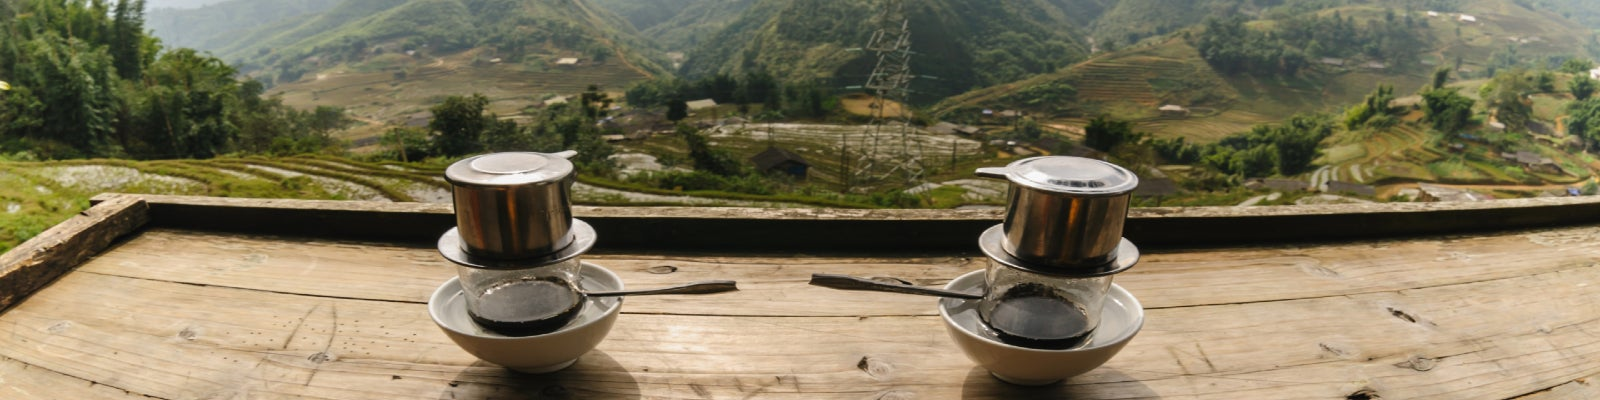 Two Vietnamese coffees on a table overlooking a valley